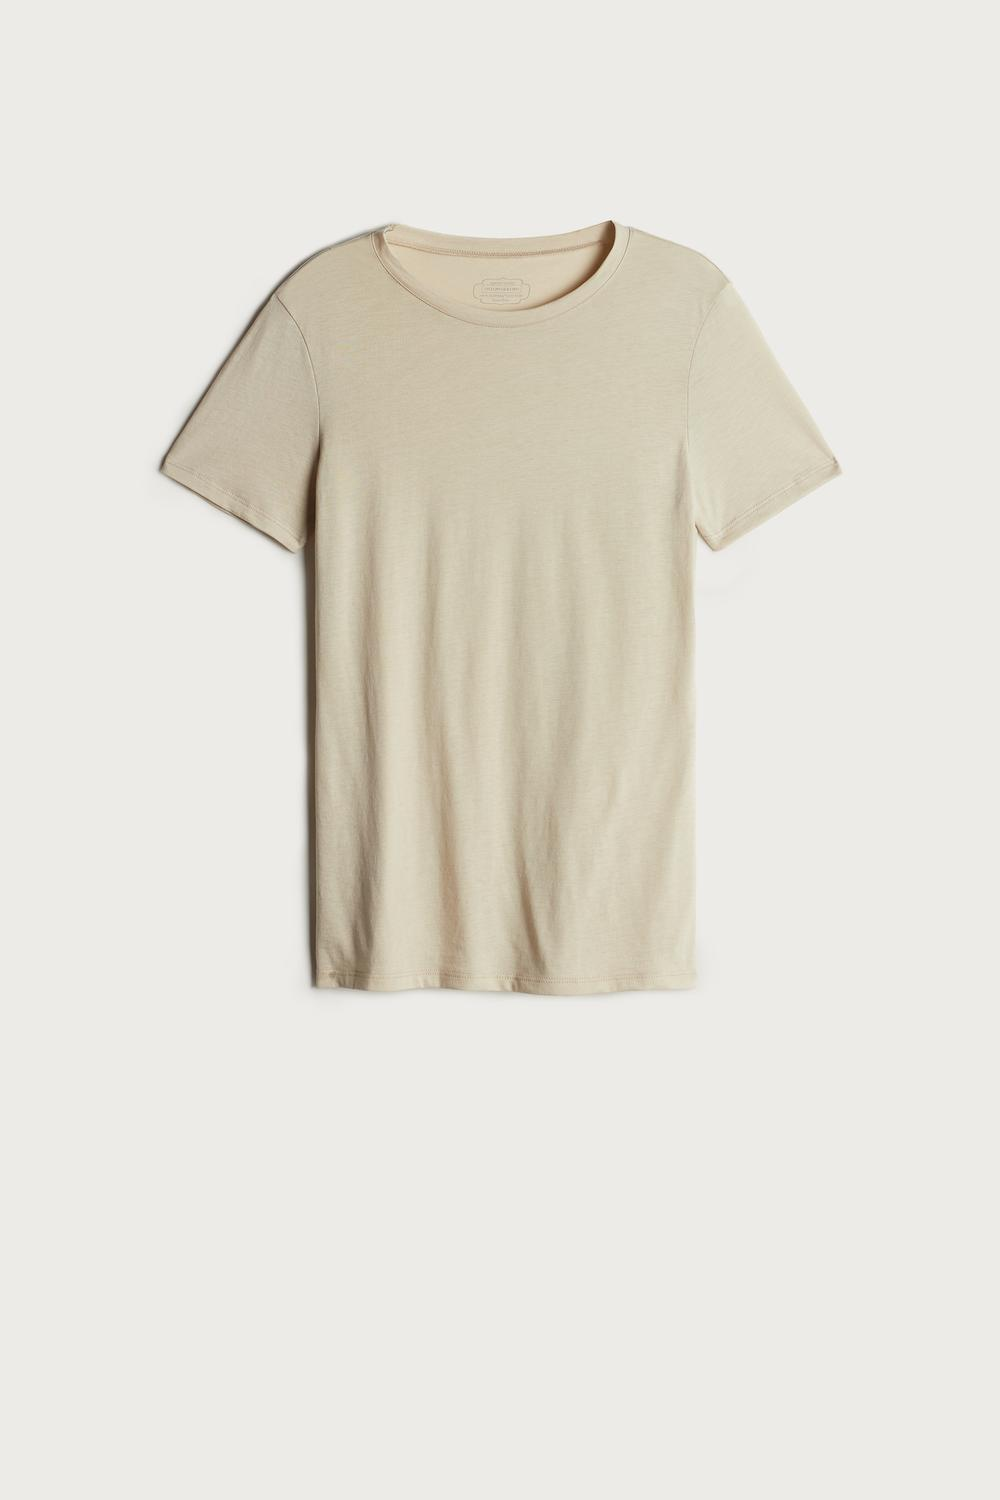 Short-Sleeve T-shirt in ExtraFine Supima® Cotton